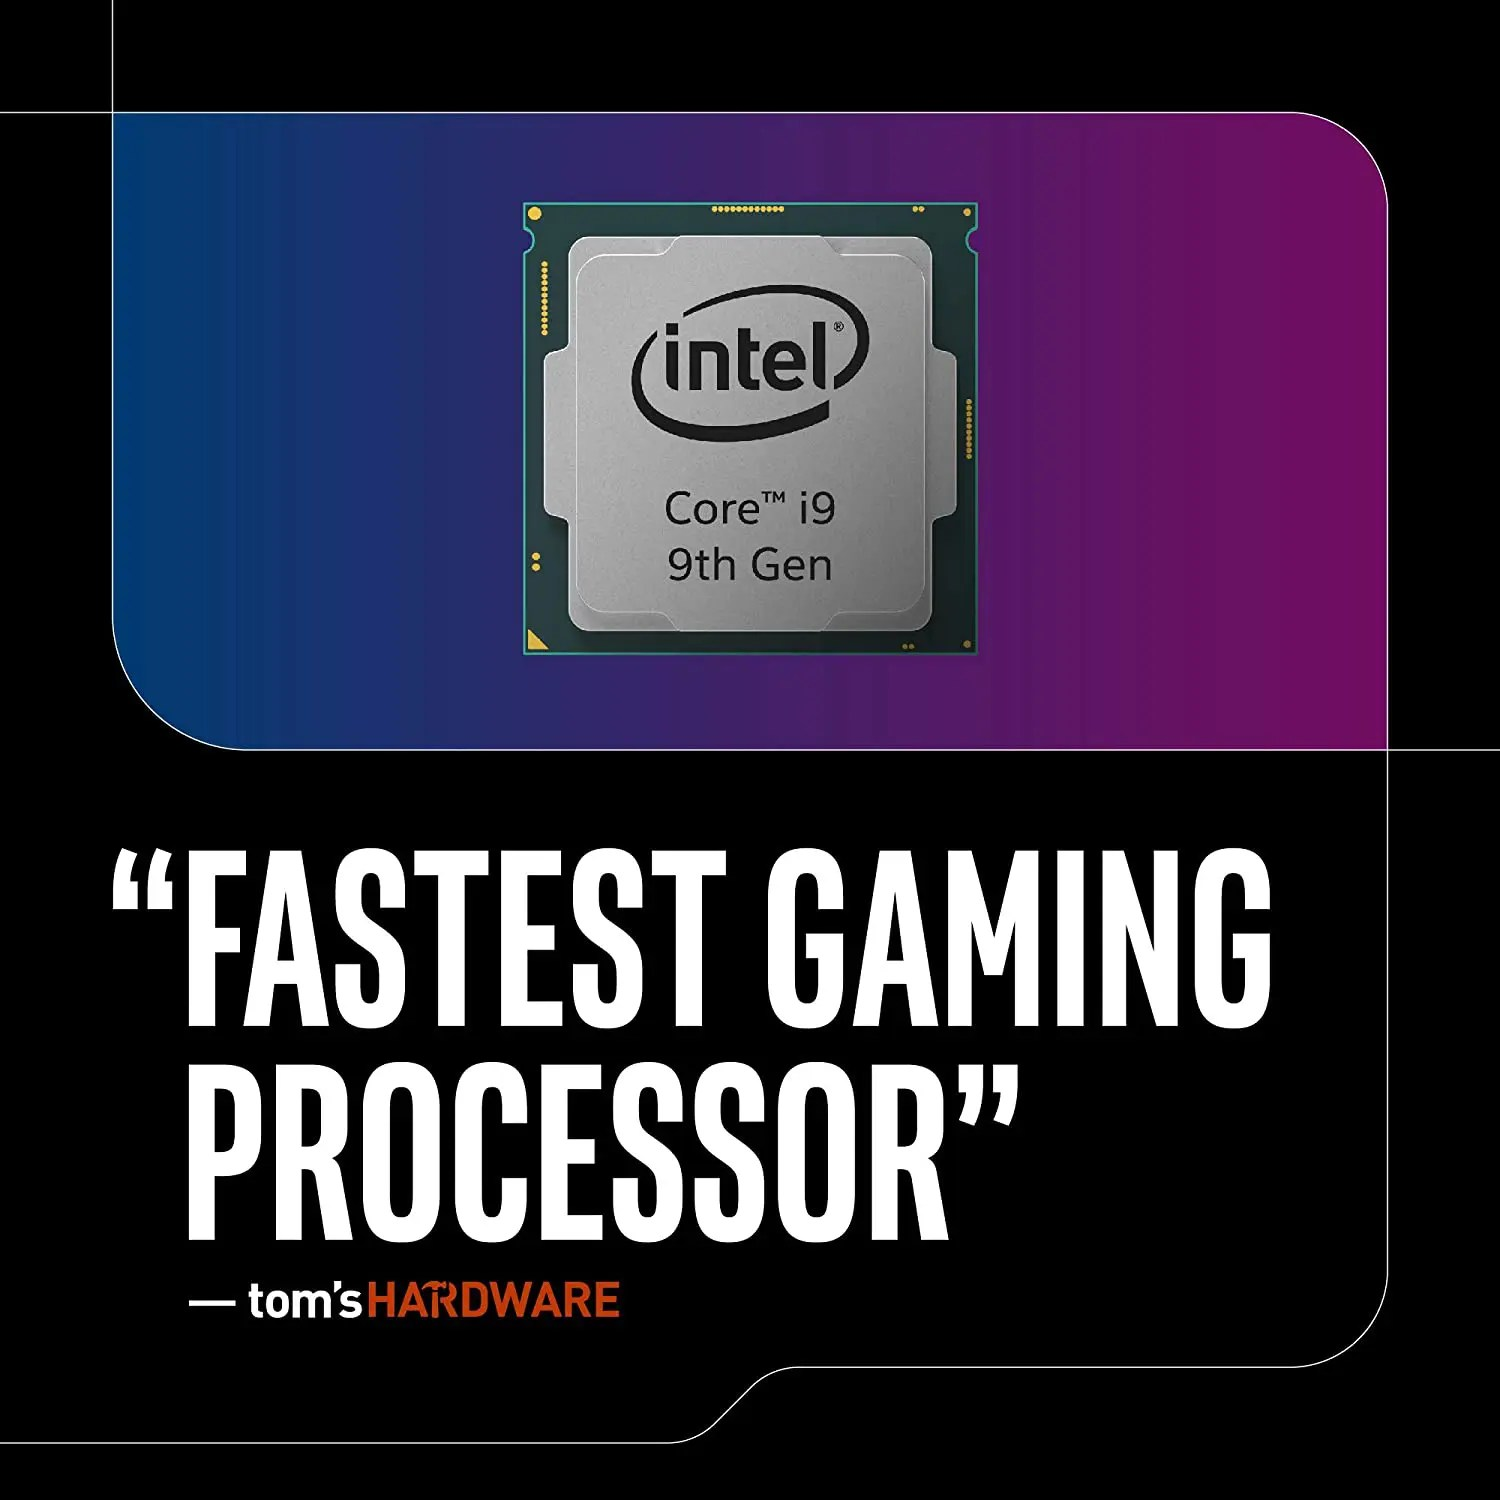 fastest gaming processor image